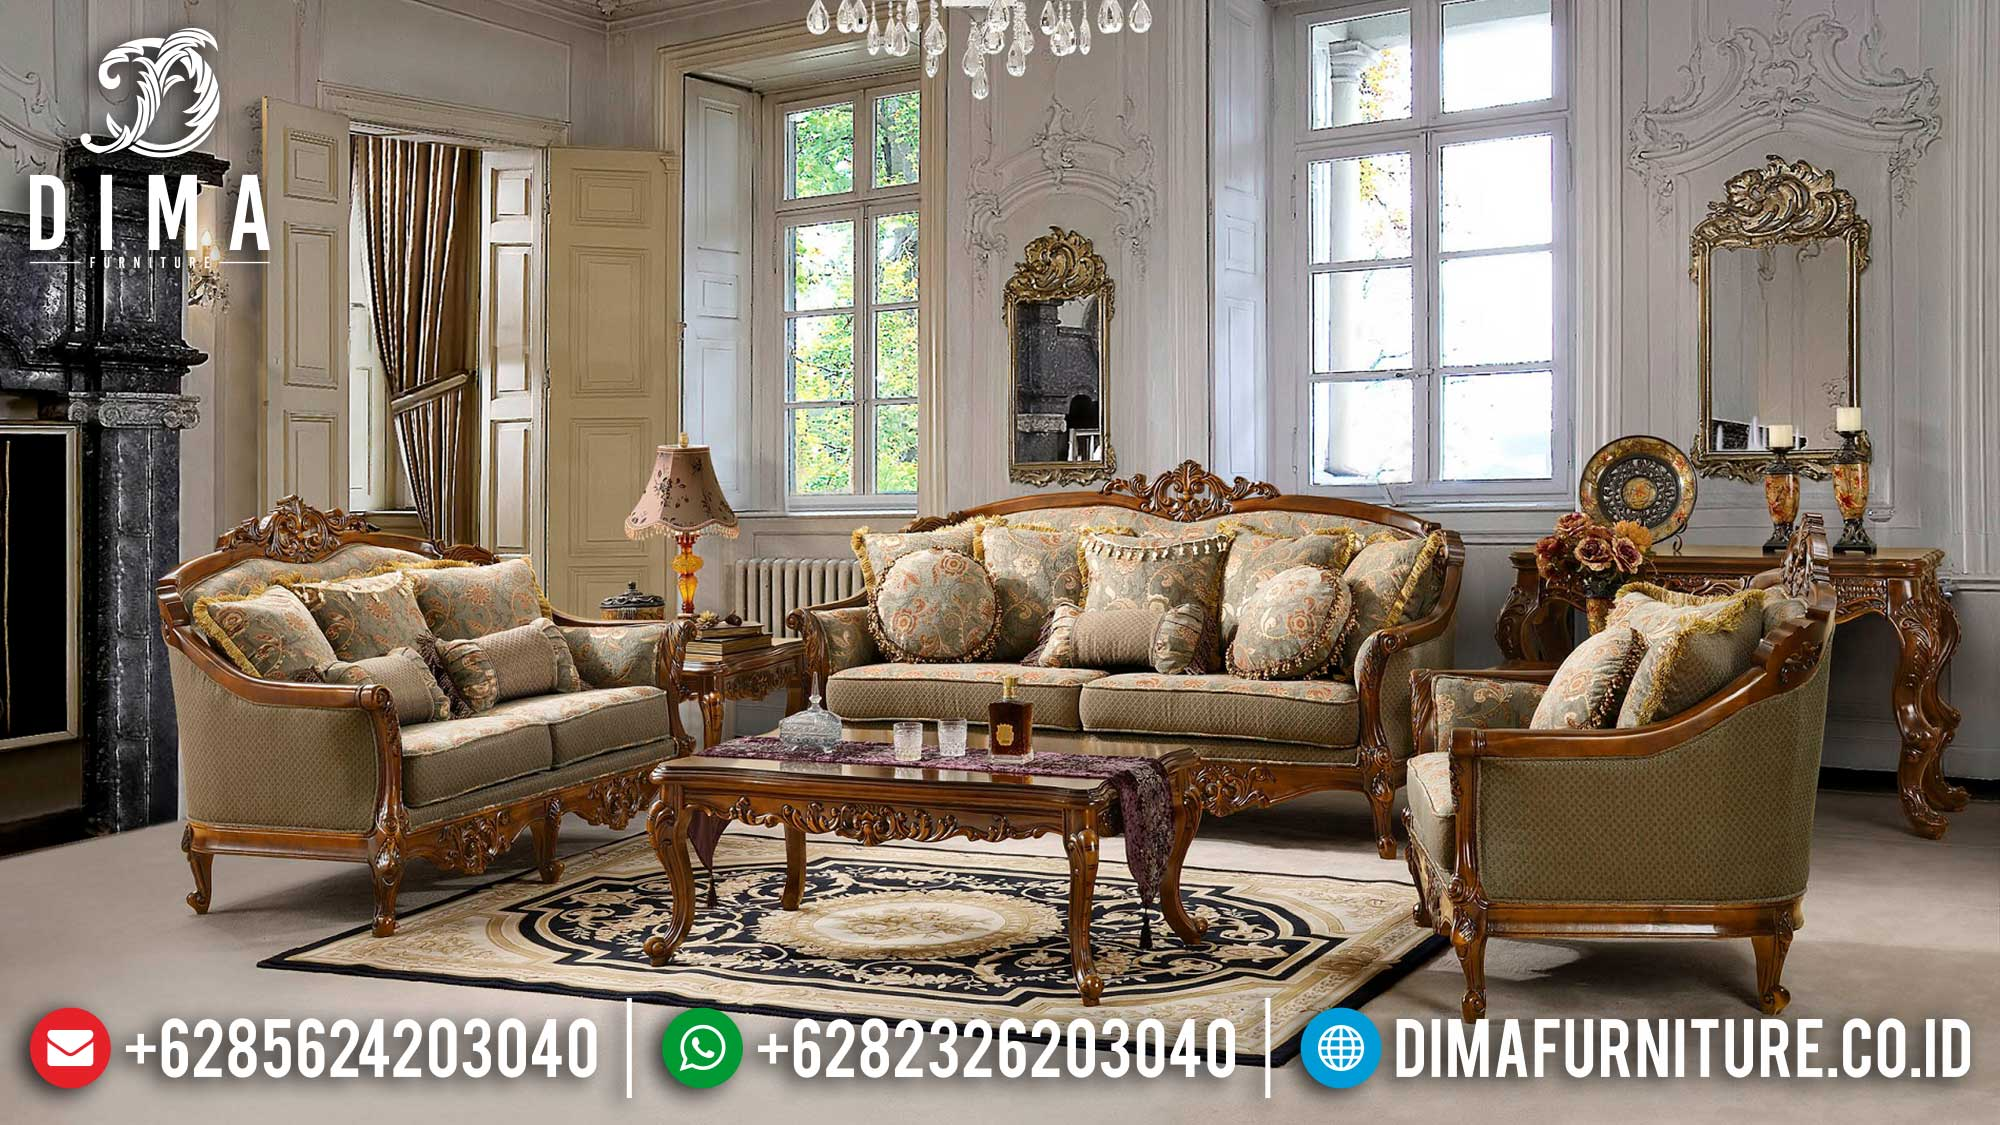 Sofa Tamu Mewah Bellavita Luxury Carving Pre Sale On March Ttj-1534